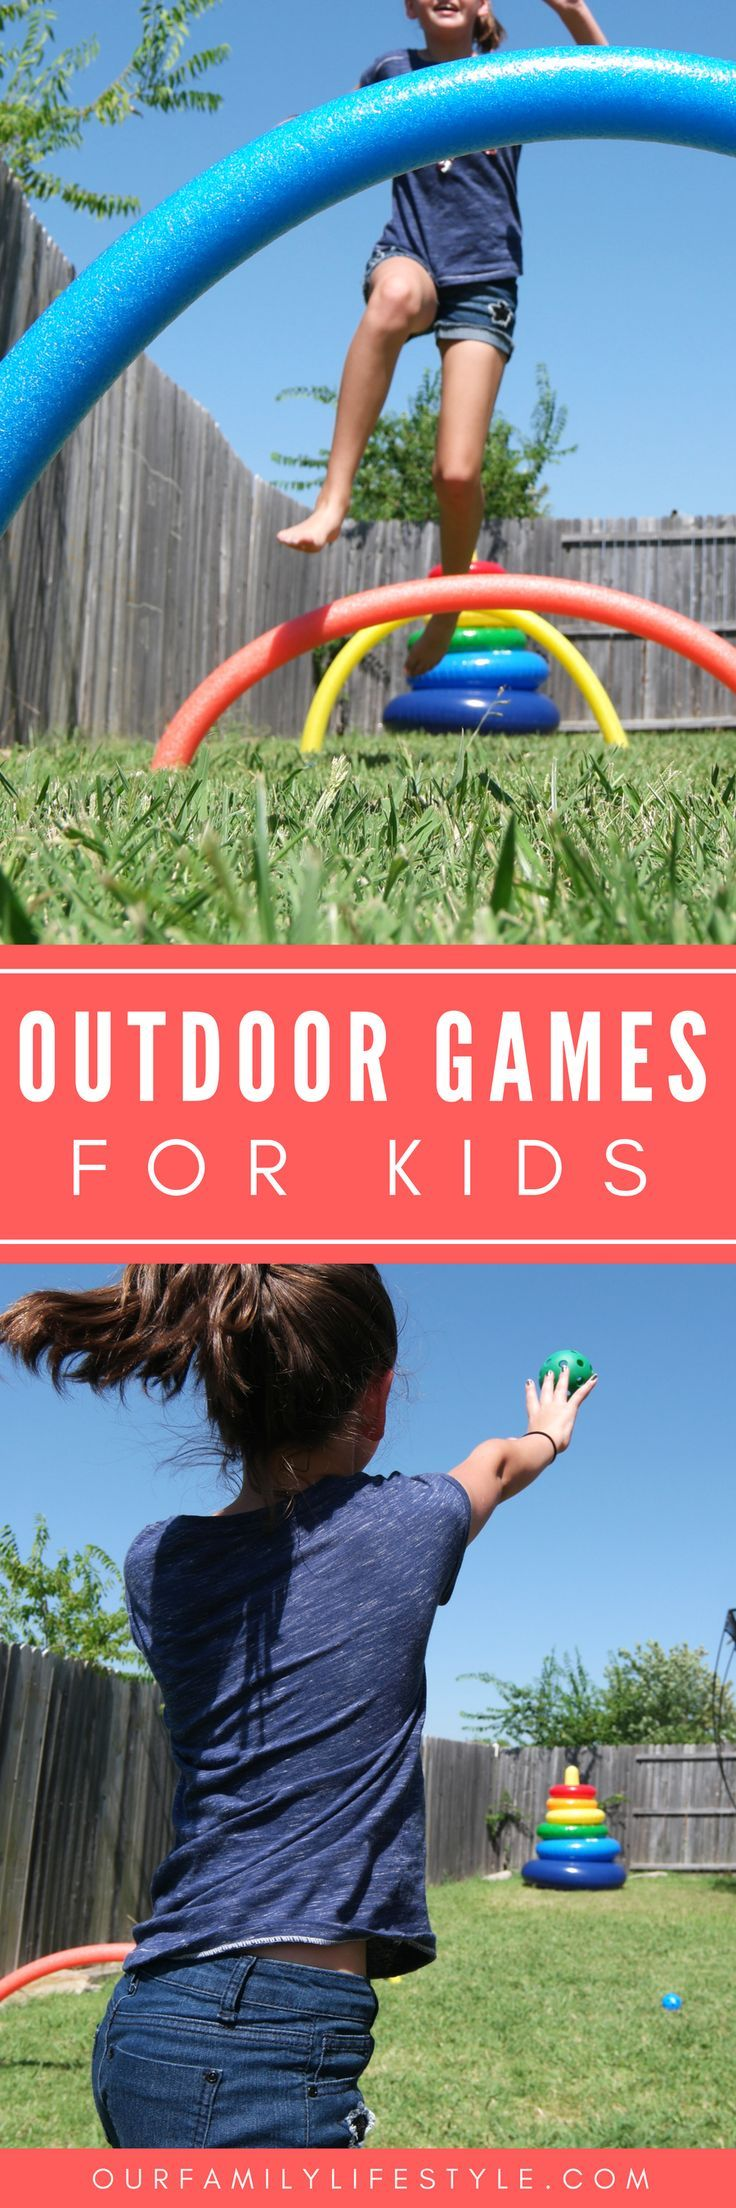 Does your family enjoy a little friendly competition? Host your own backyard children games for some fun summer activities games for kids to play outside.